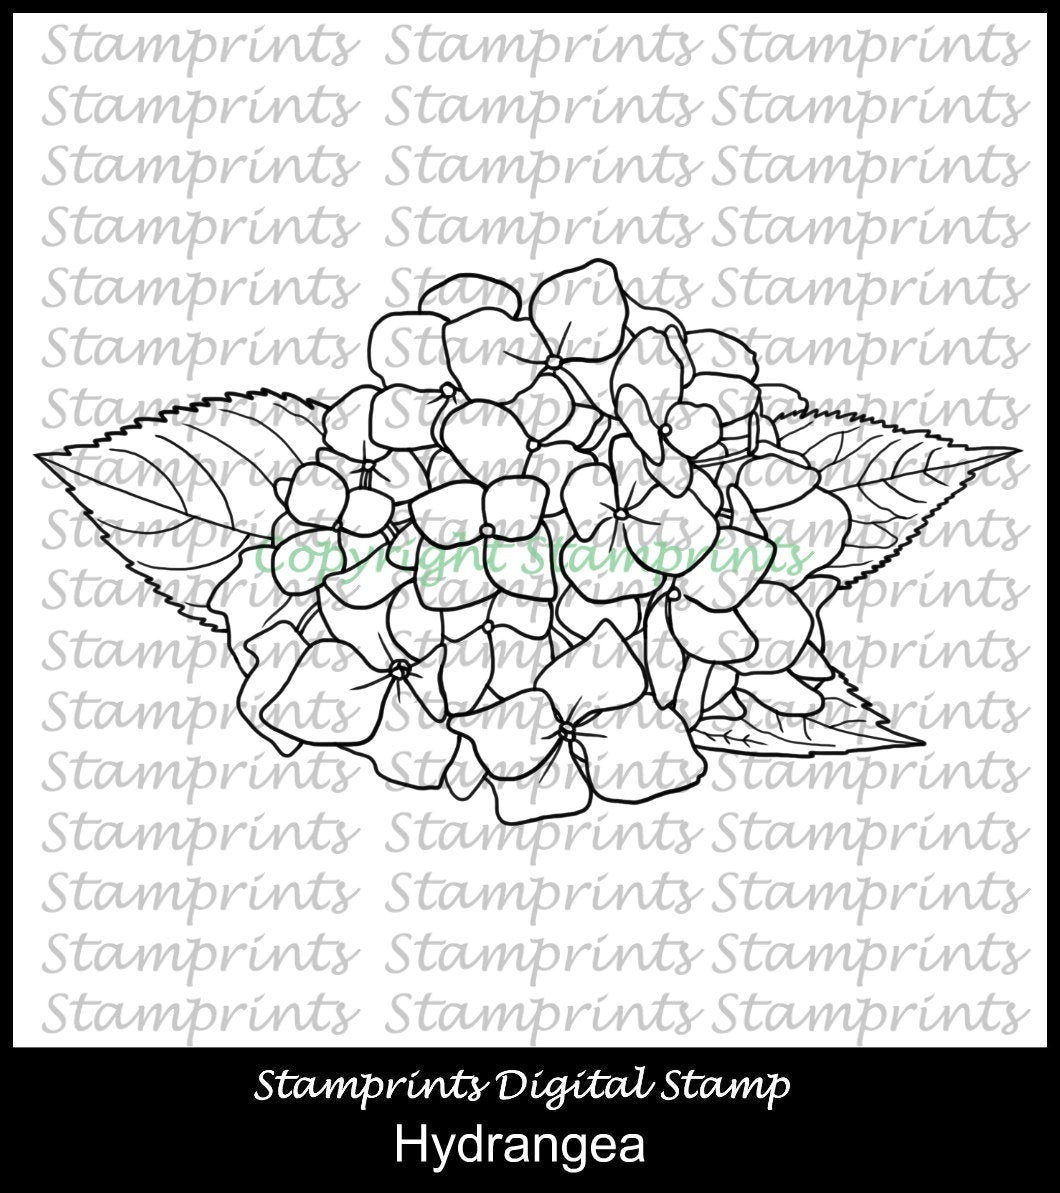 Hydrangea Digital Stamp Stamprints (TLS-1950) Cardmaking.MixedMedia.